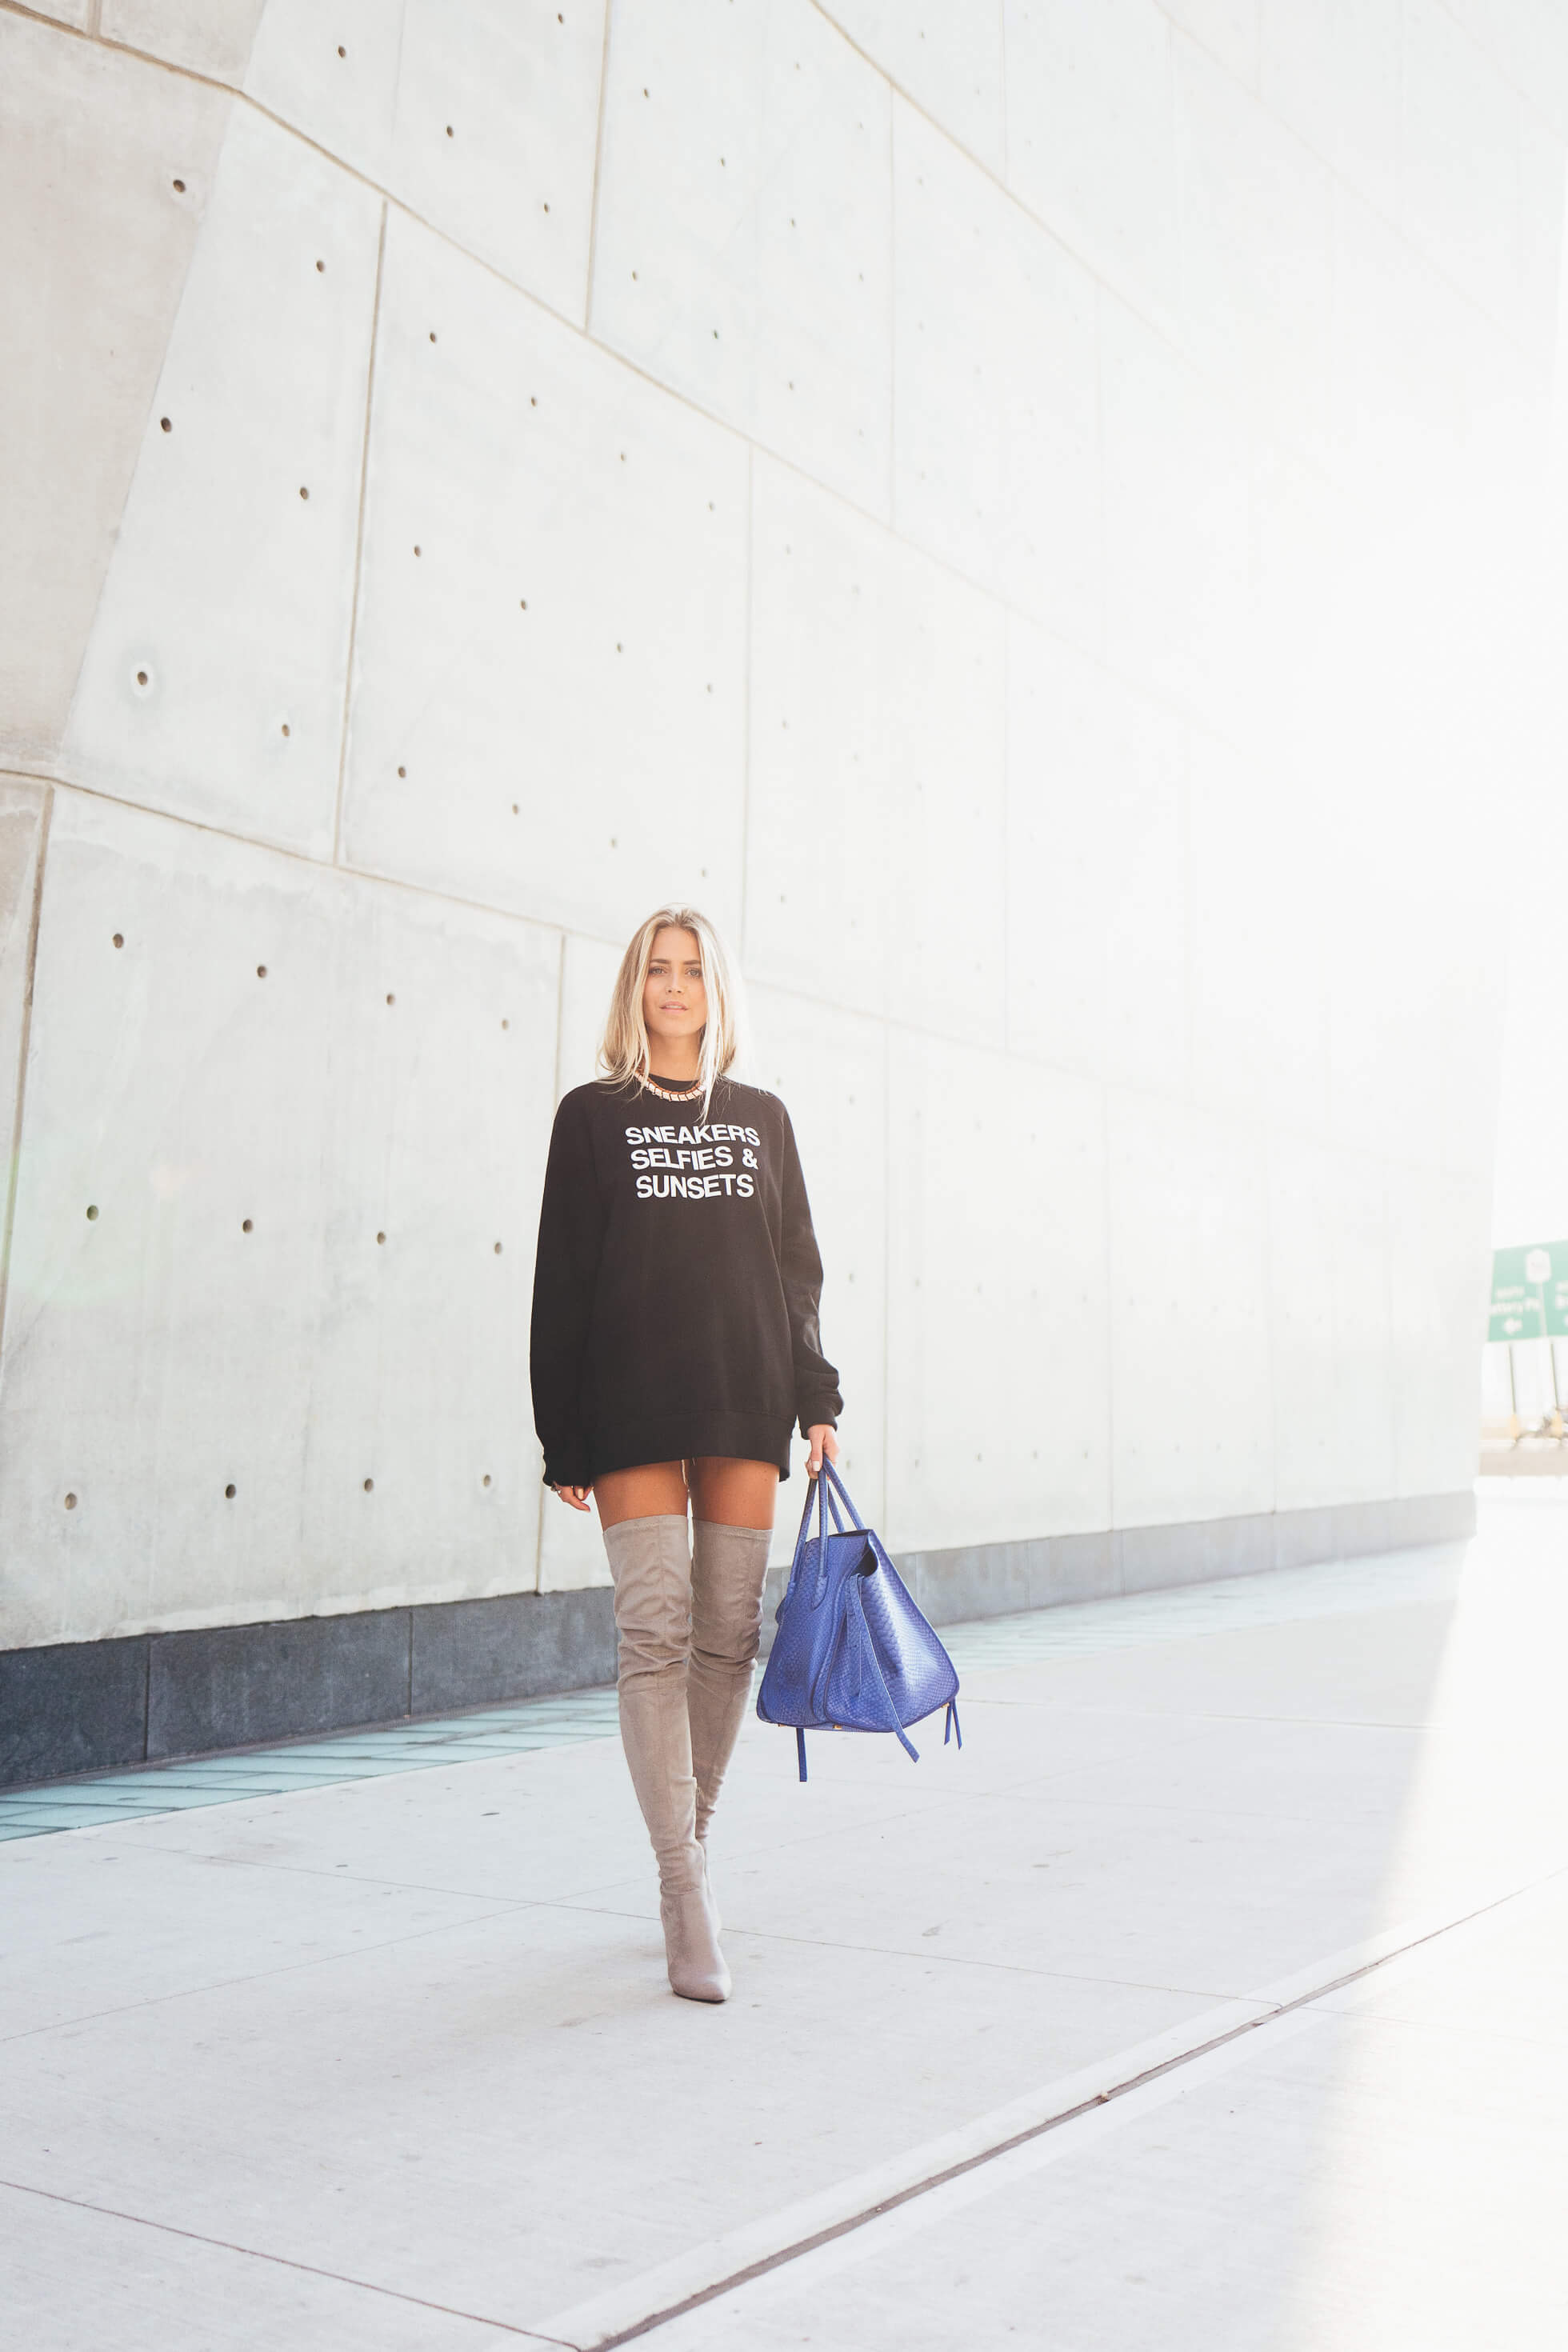 janni-deler-sneakers-selfies-sunsets-sweaterL1090899